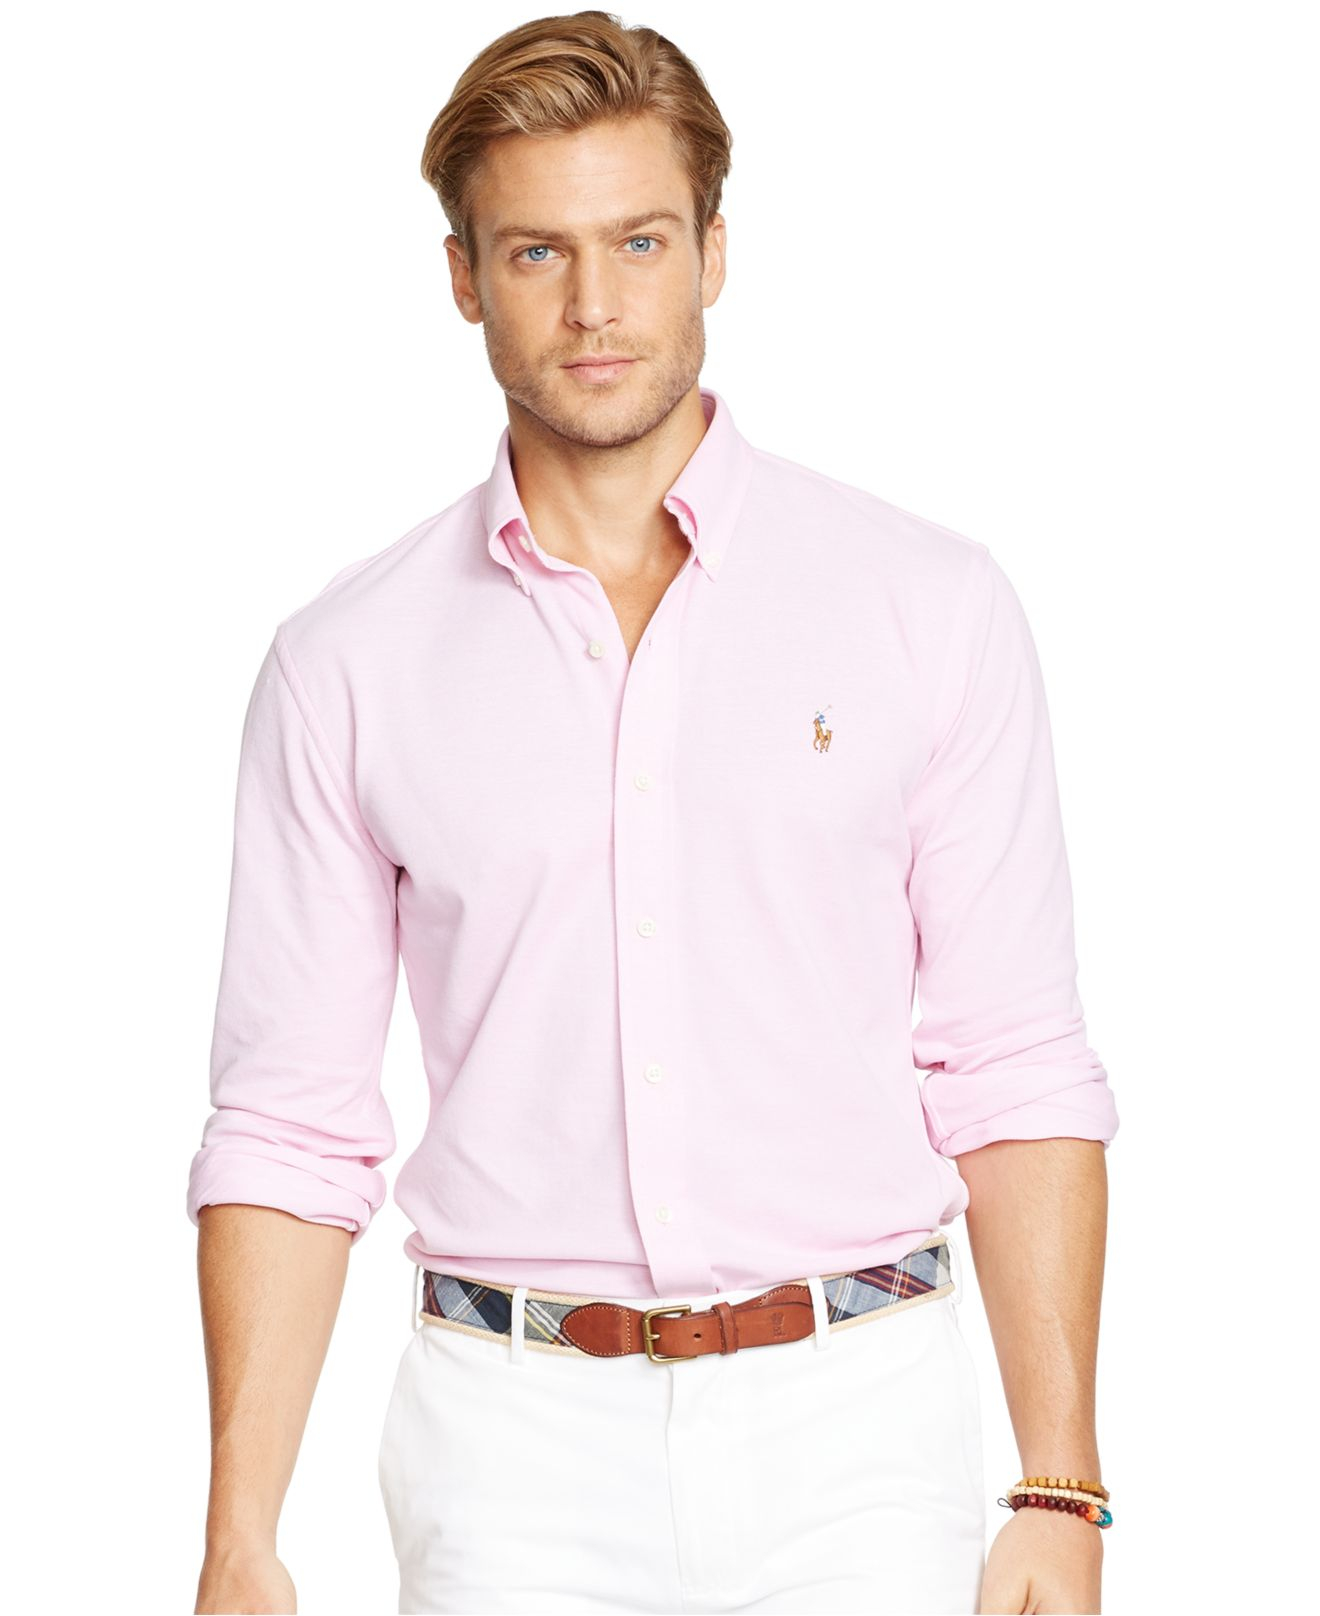 lyst polo ralph lauren oxford piqu sport shirt in pink. Black Bedroom Furniture Sets. Home Design Ideas